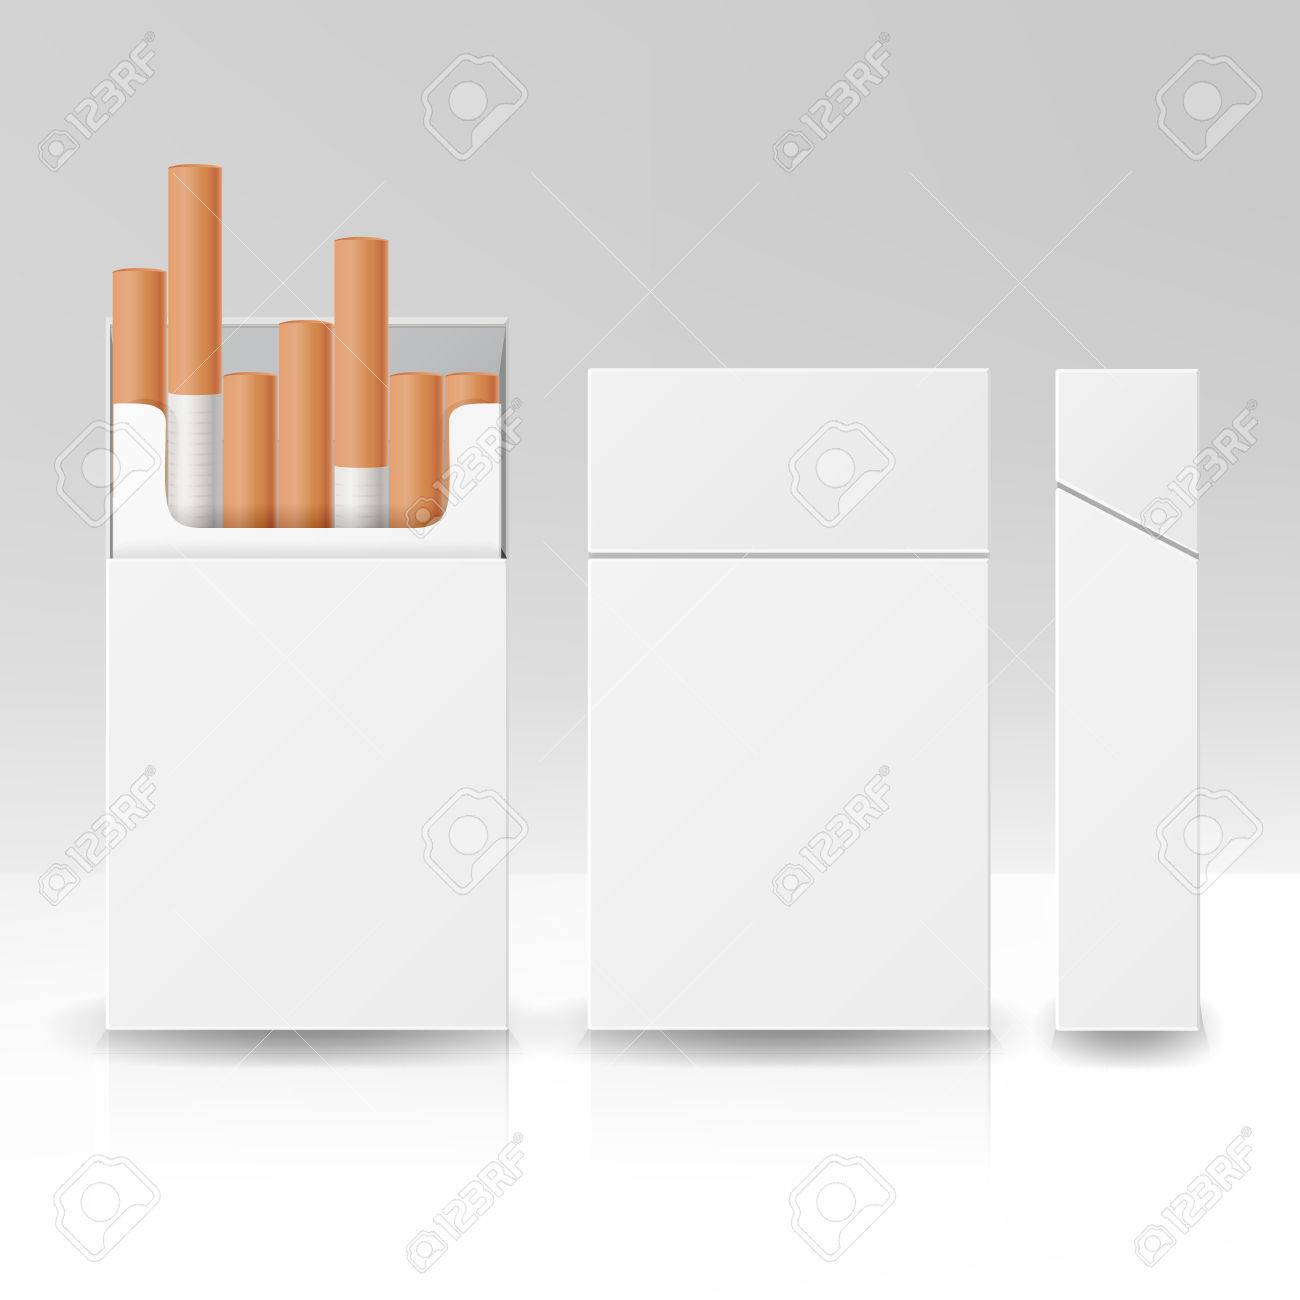 Blank Pack Package Box Of Cigarettes 3D Vector Carton Template For Design. Isolated Illustration - 75826889